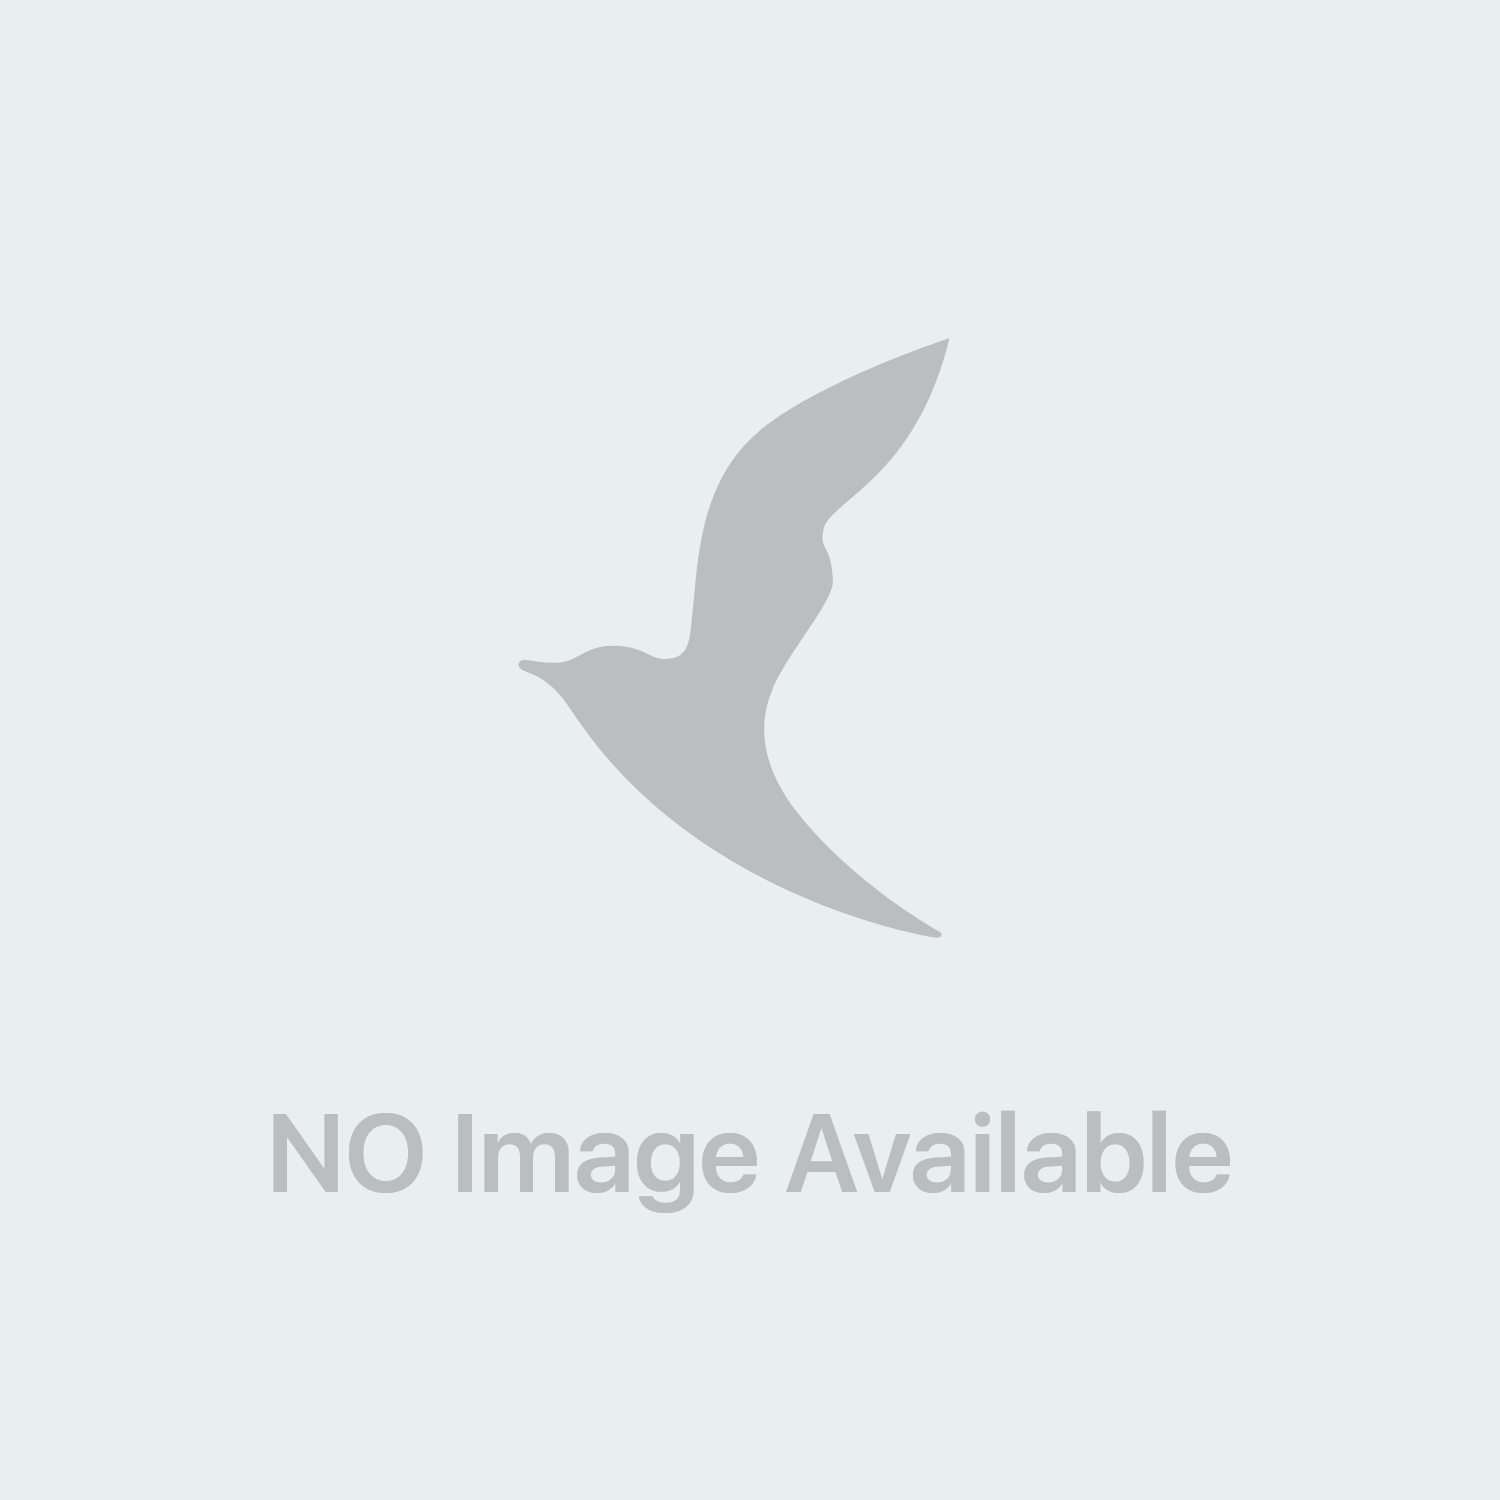 Multicentrum Uomo Integratore Multivitaminico Multiminerale 30 Compresse